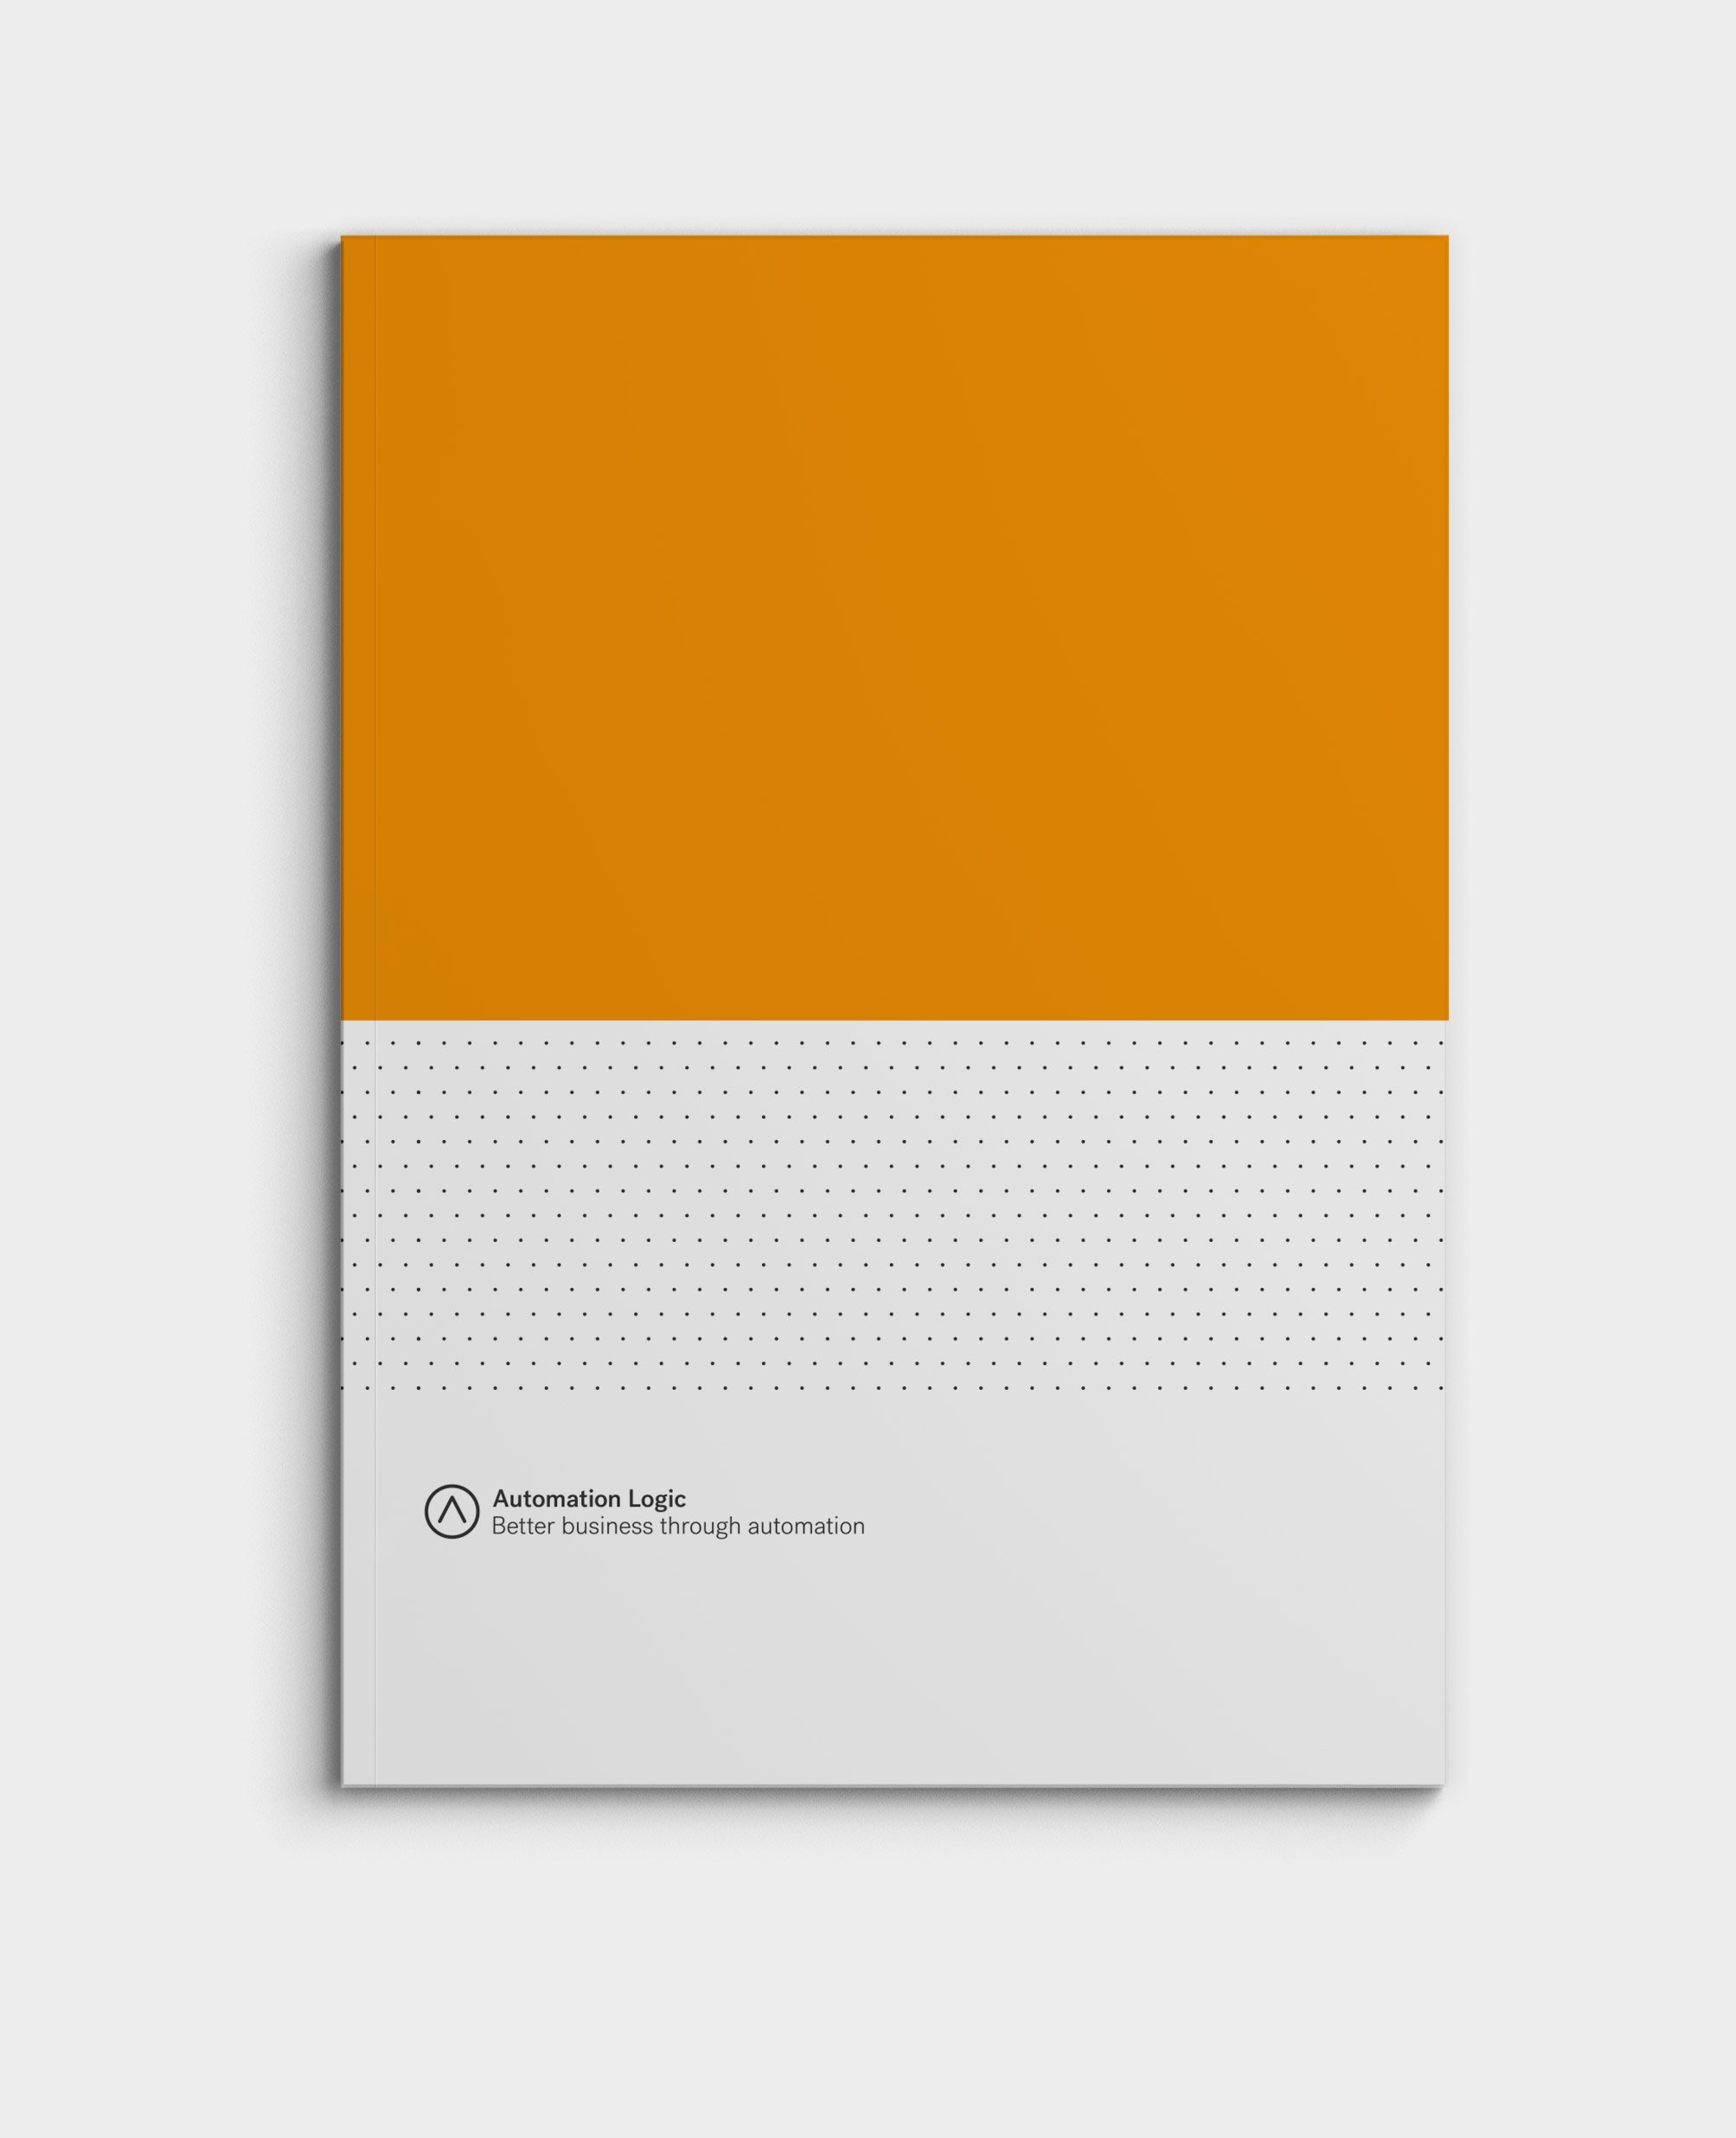 Automation Logic Brand Book by Spinach Branding